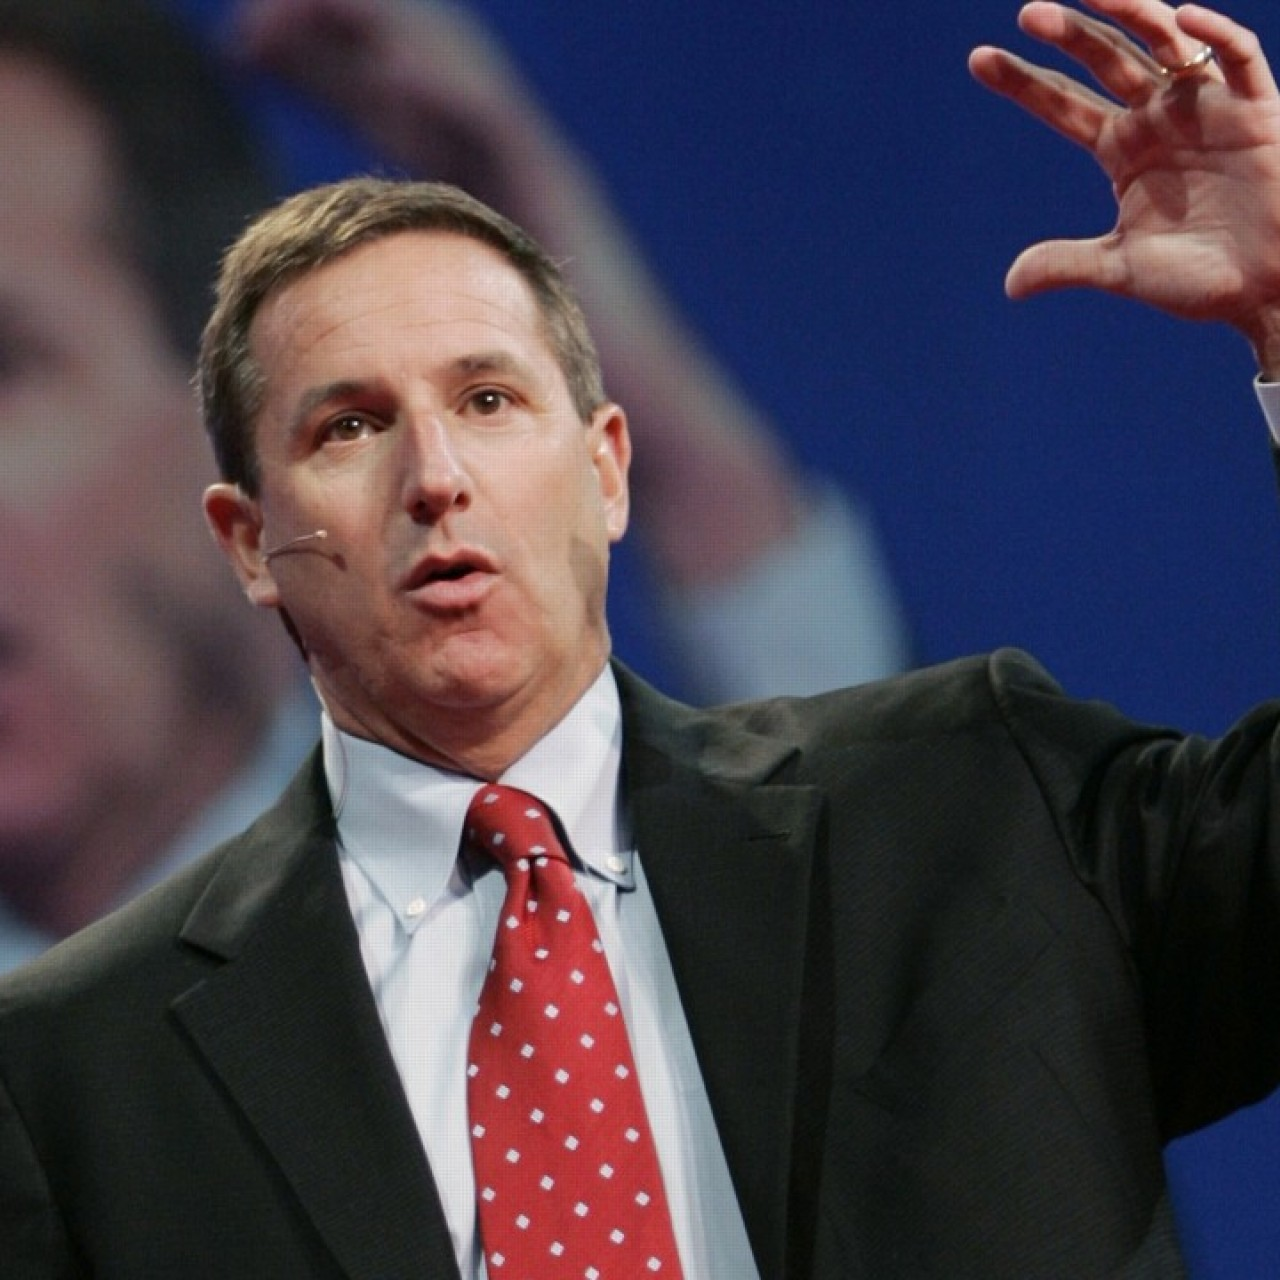 Oracle joins Apple in support of a tax repatriation plan | South